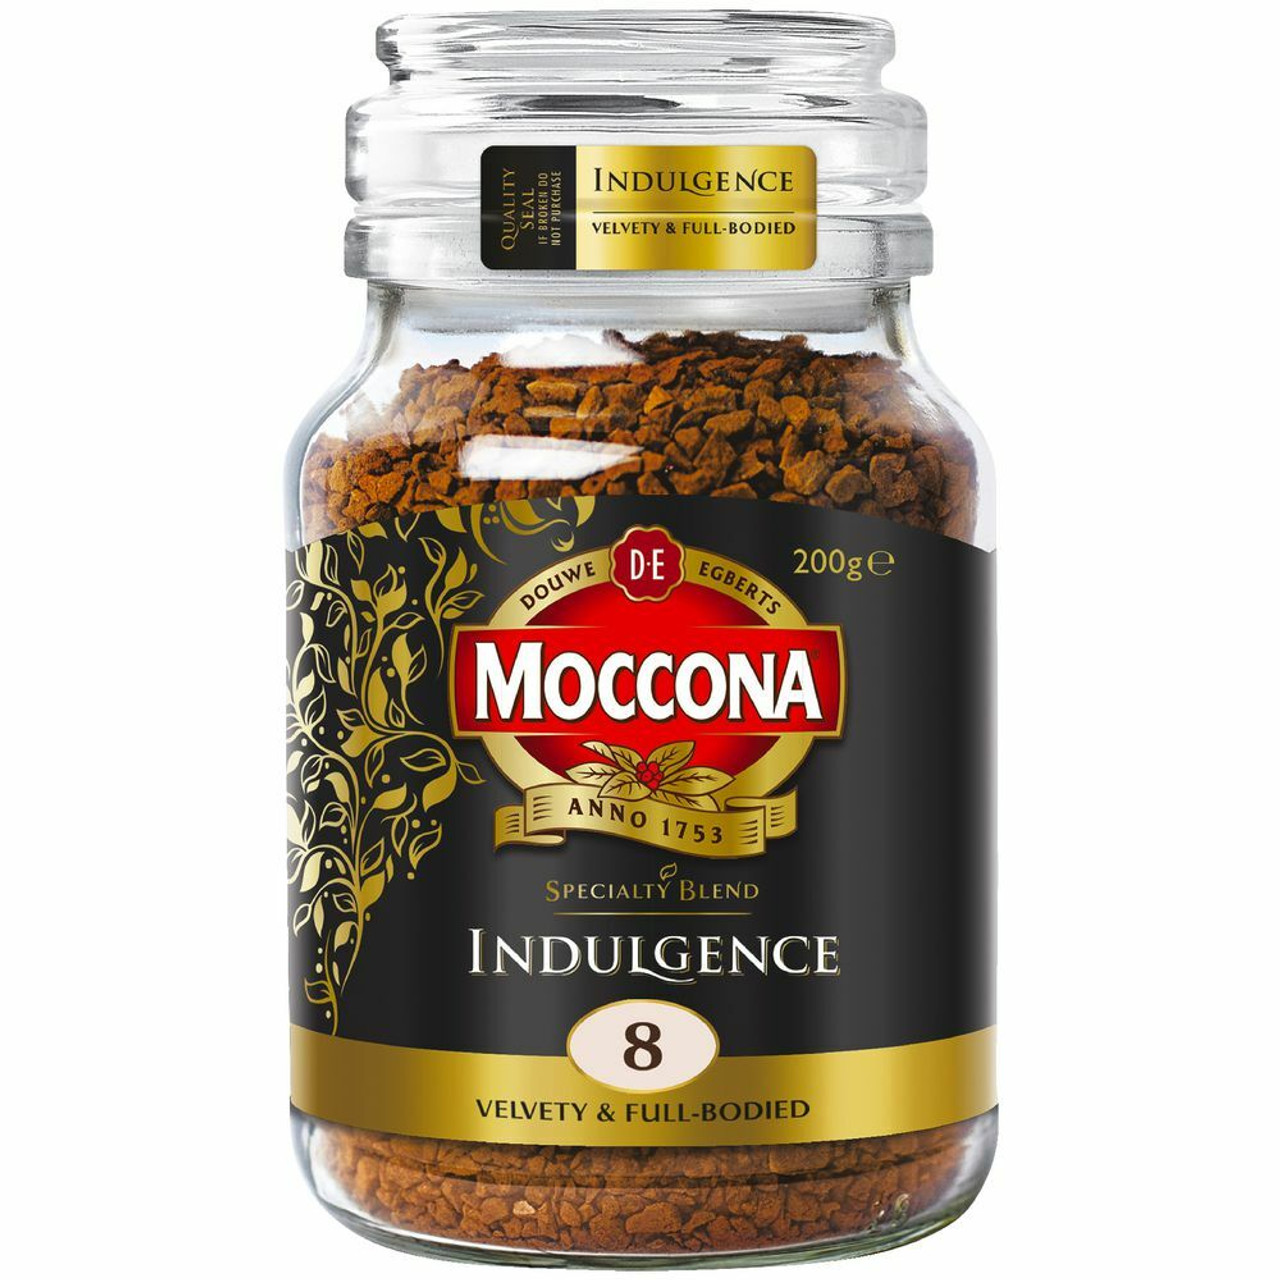 Moccona 33149 Coffee Indulgence Jar 200g Megax